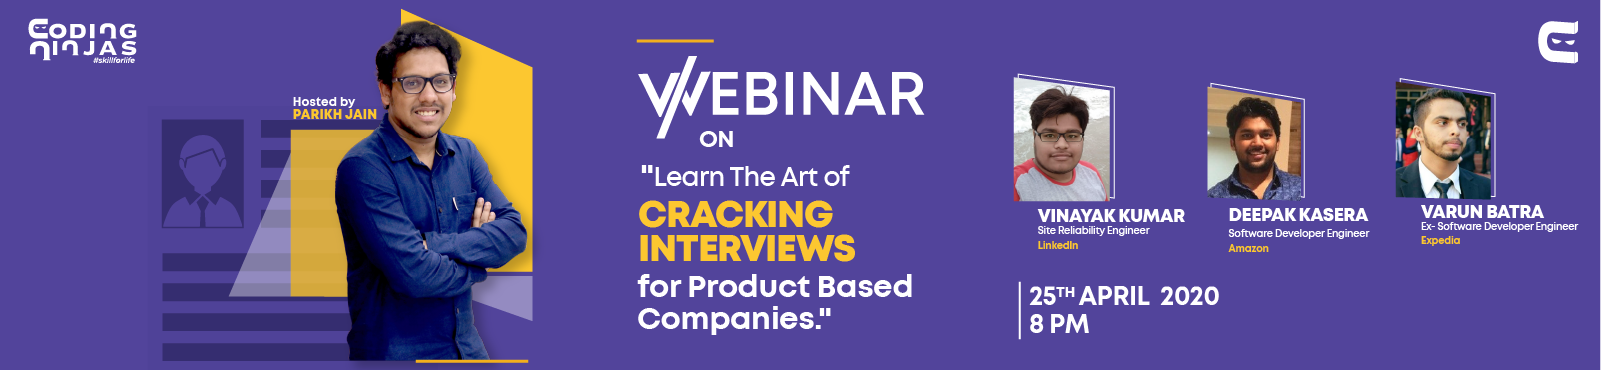 Learn the Art of Cracking Interviews for Product Based Companies